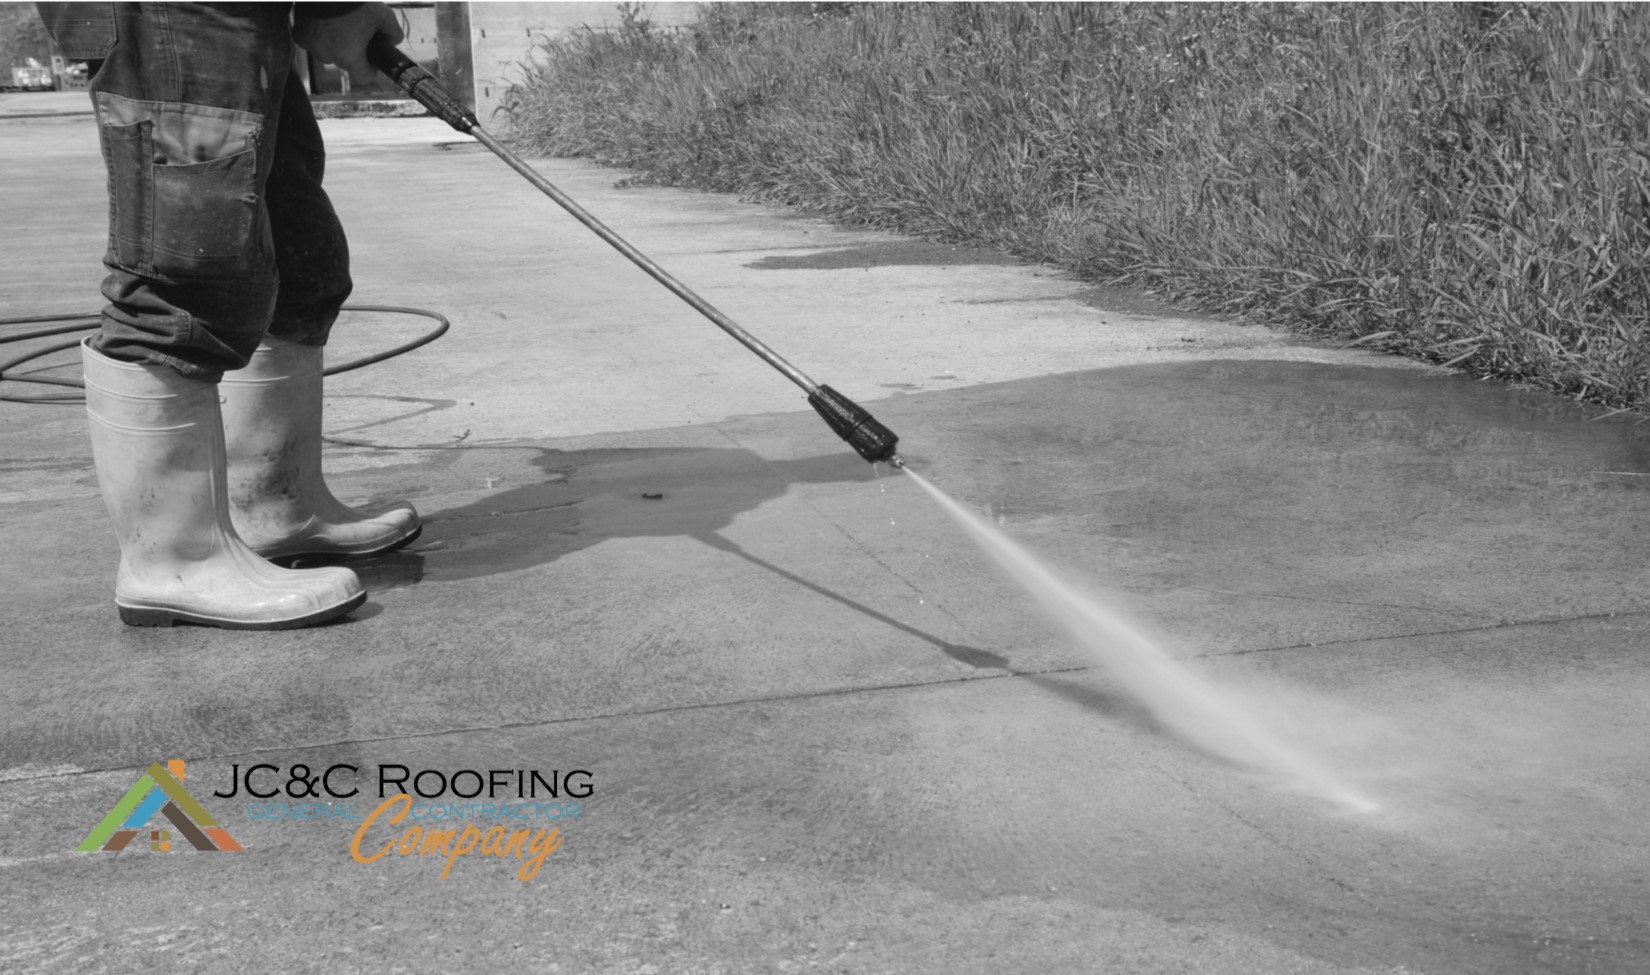 JC&C Roofing Company image 3